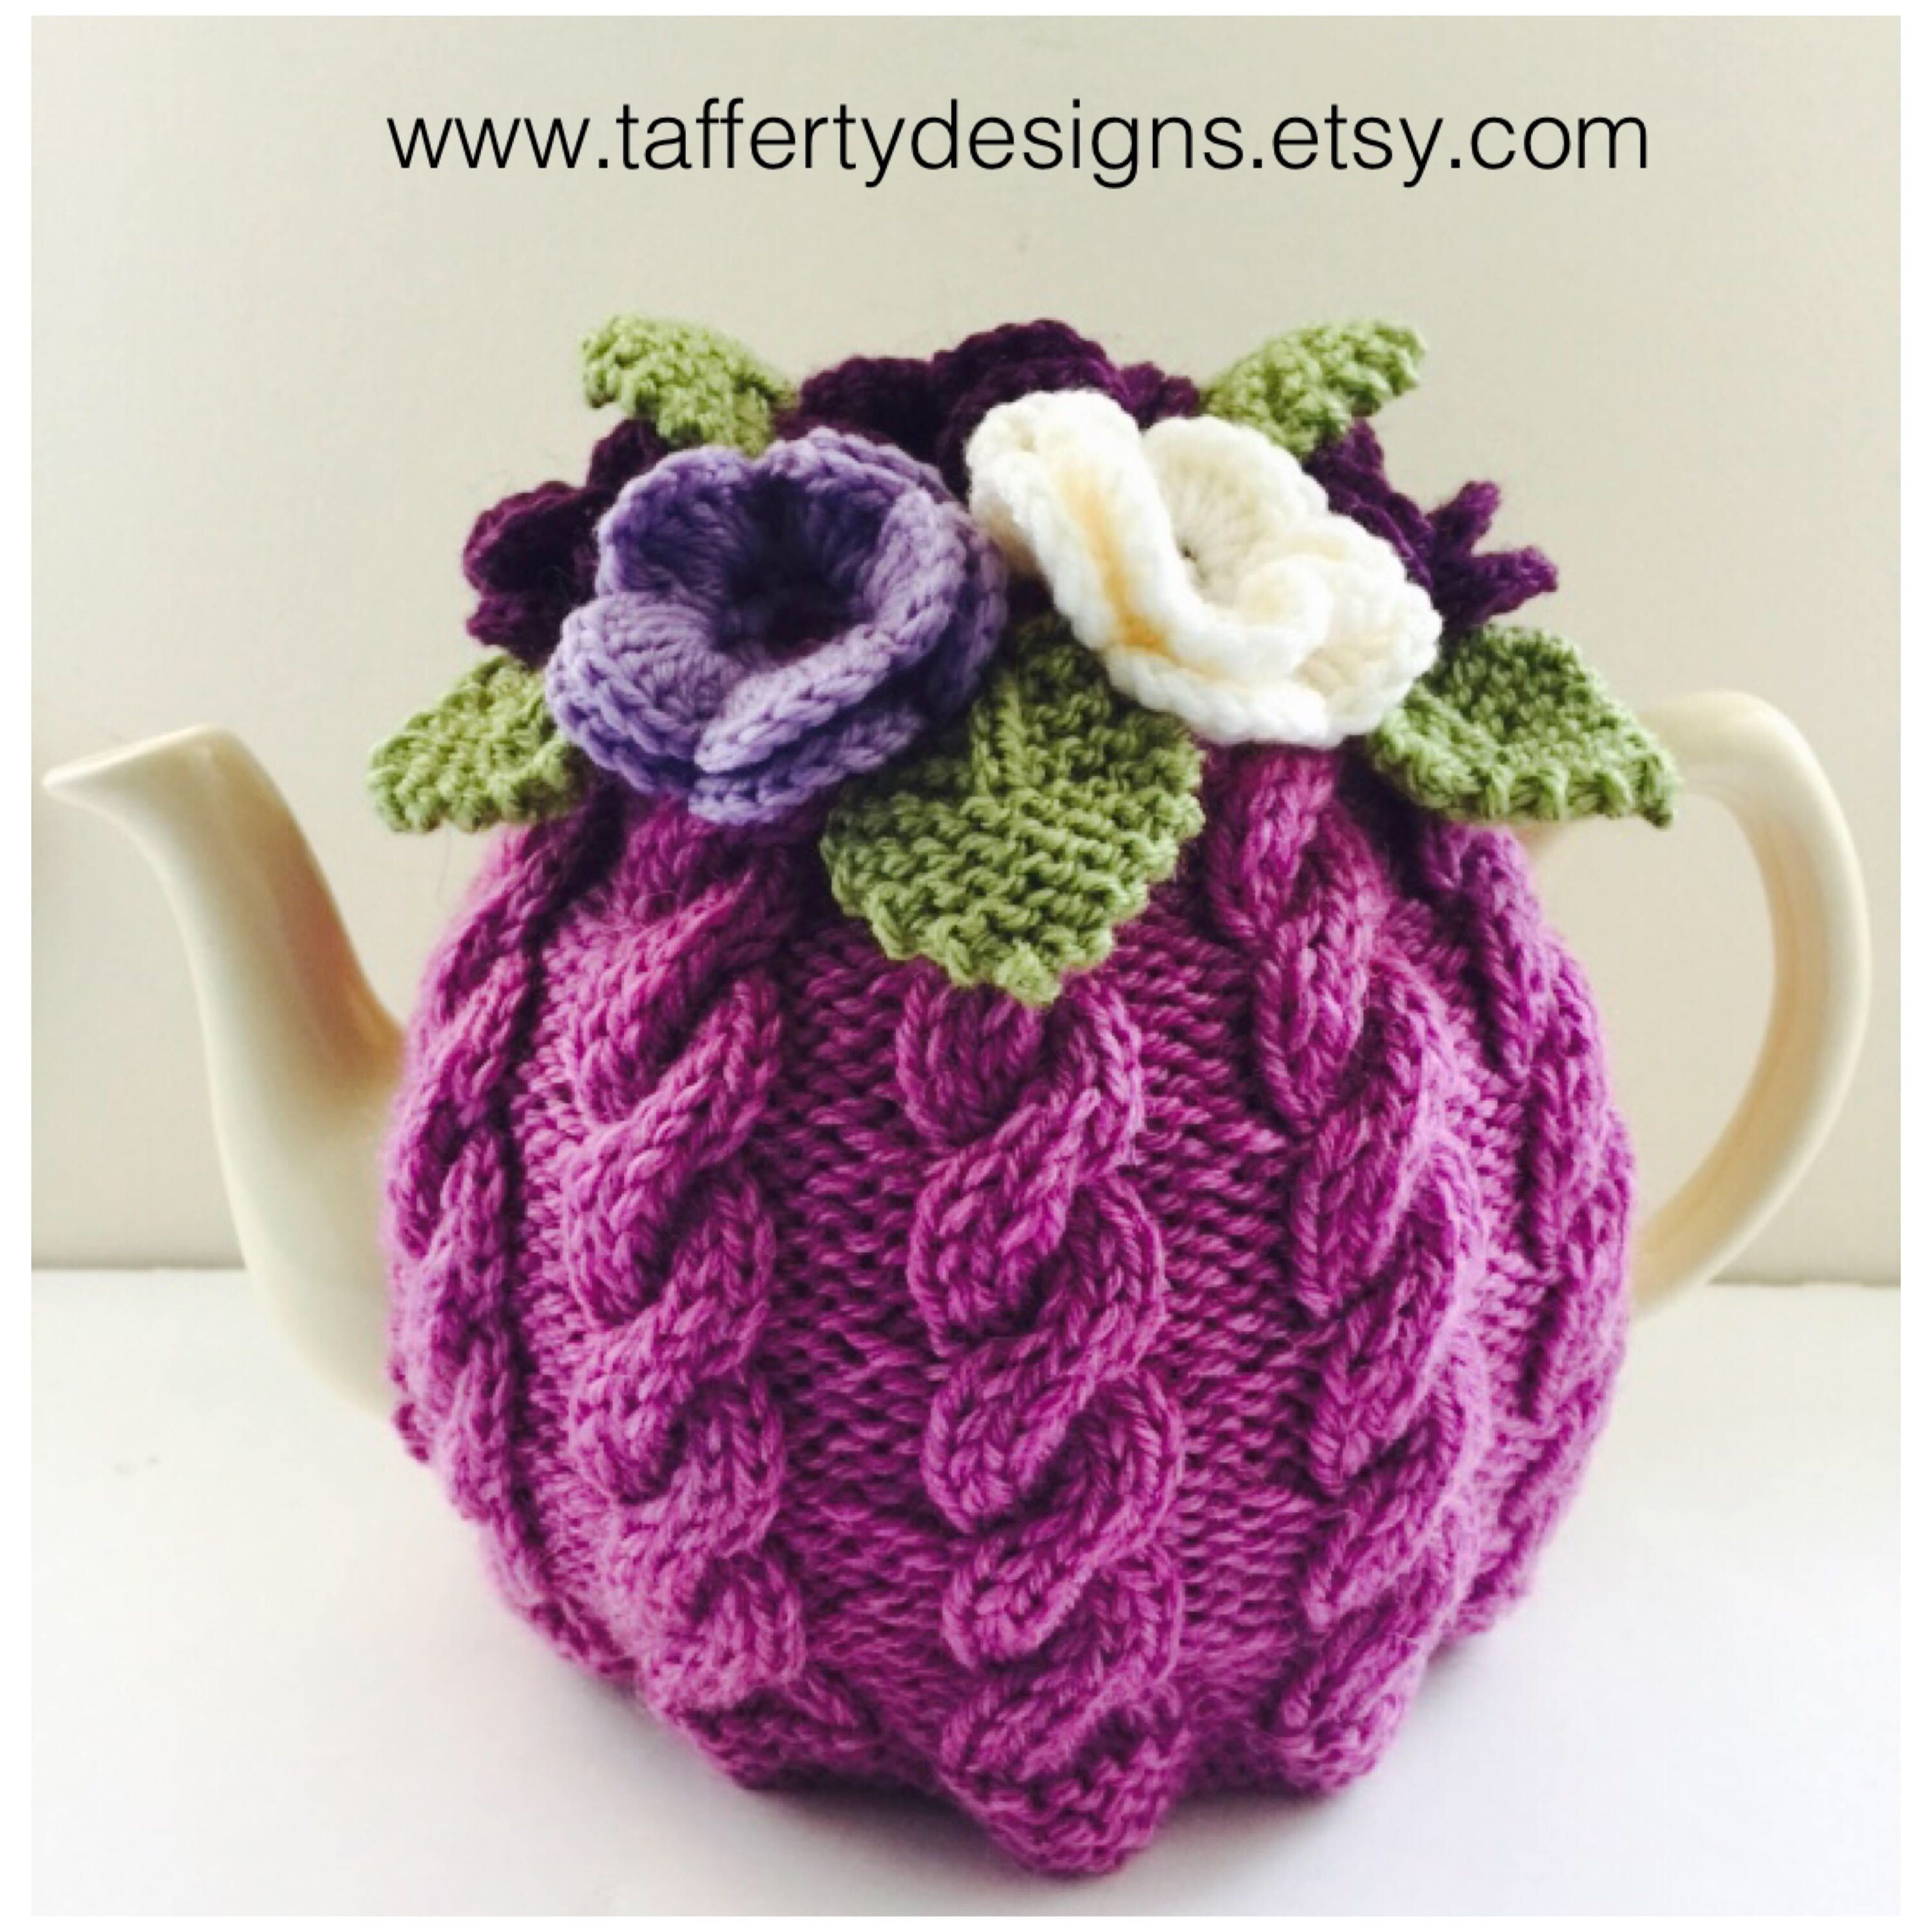 Floral Cabled Tea Cosy in Pure Wool - Size Medium - fits medium 6 ...